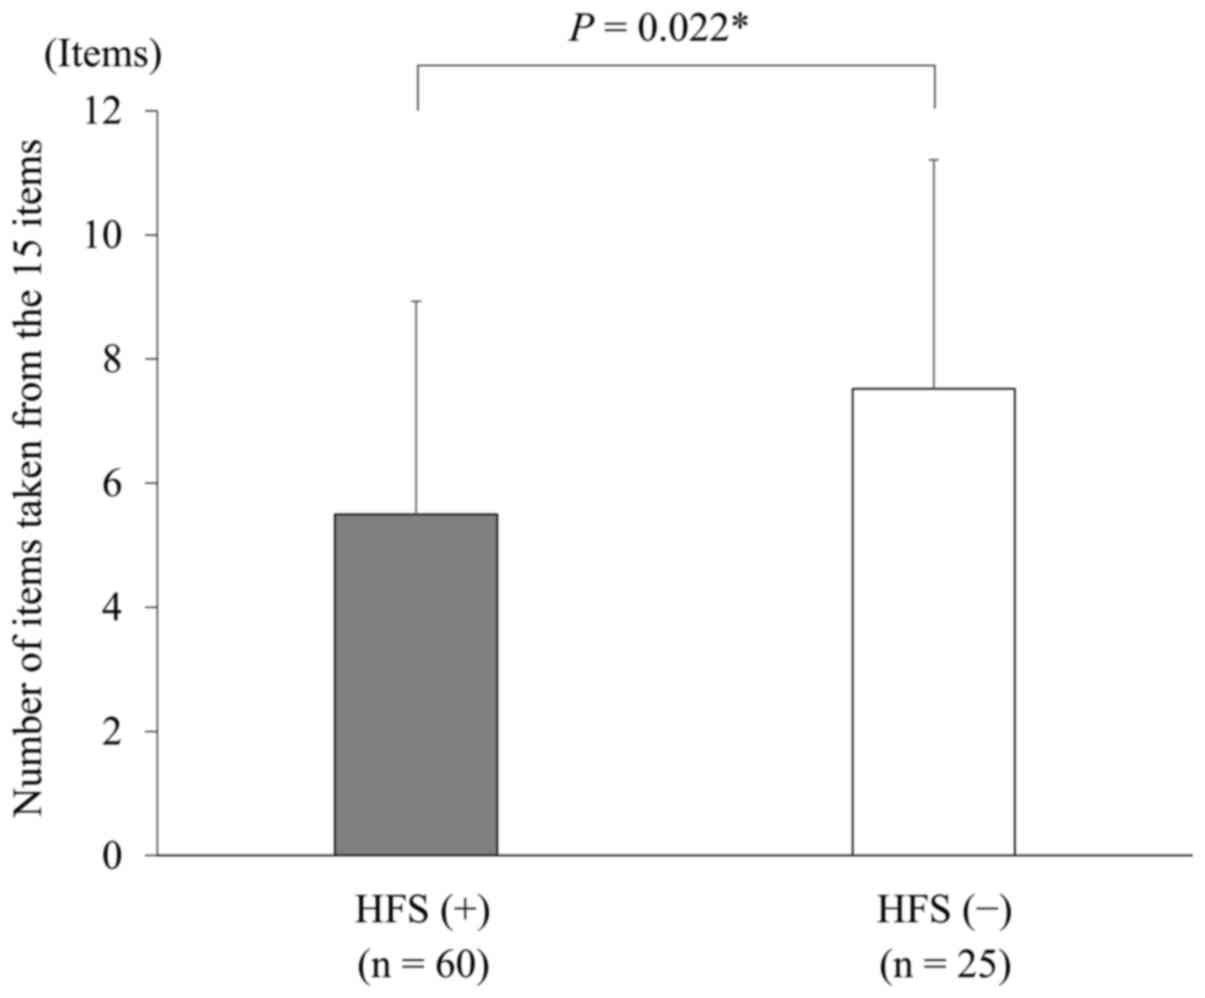 A Cross Sectional Survey Of Methods For Controling Hand Foot Hoshi Breast Cream Figure 1 Association Between The Number Items Taken To Prevent And Treat Hfs Development Symptoms Data Shown Are Mean Standard